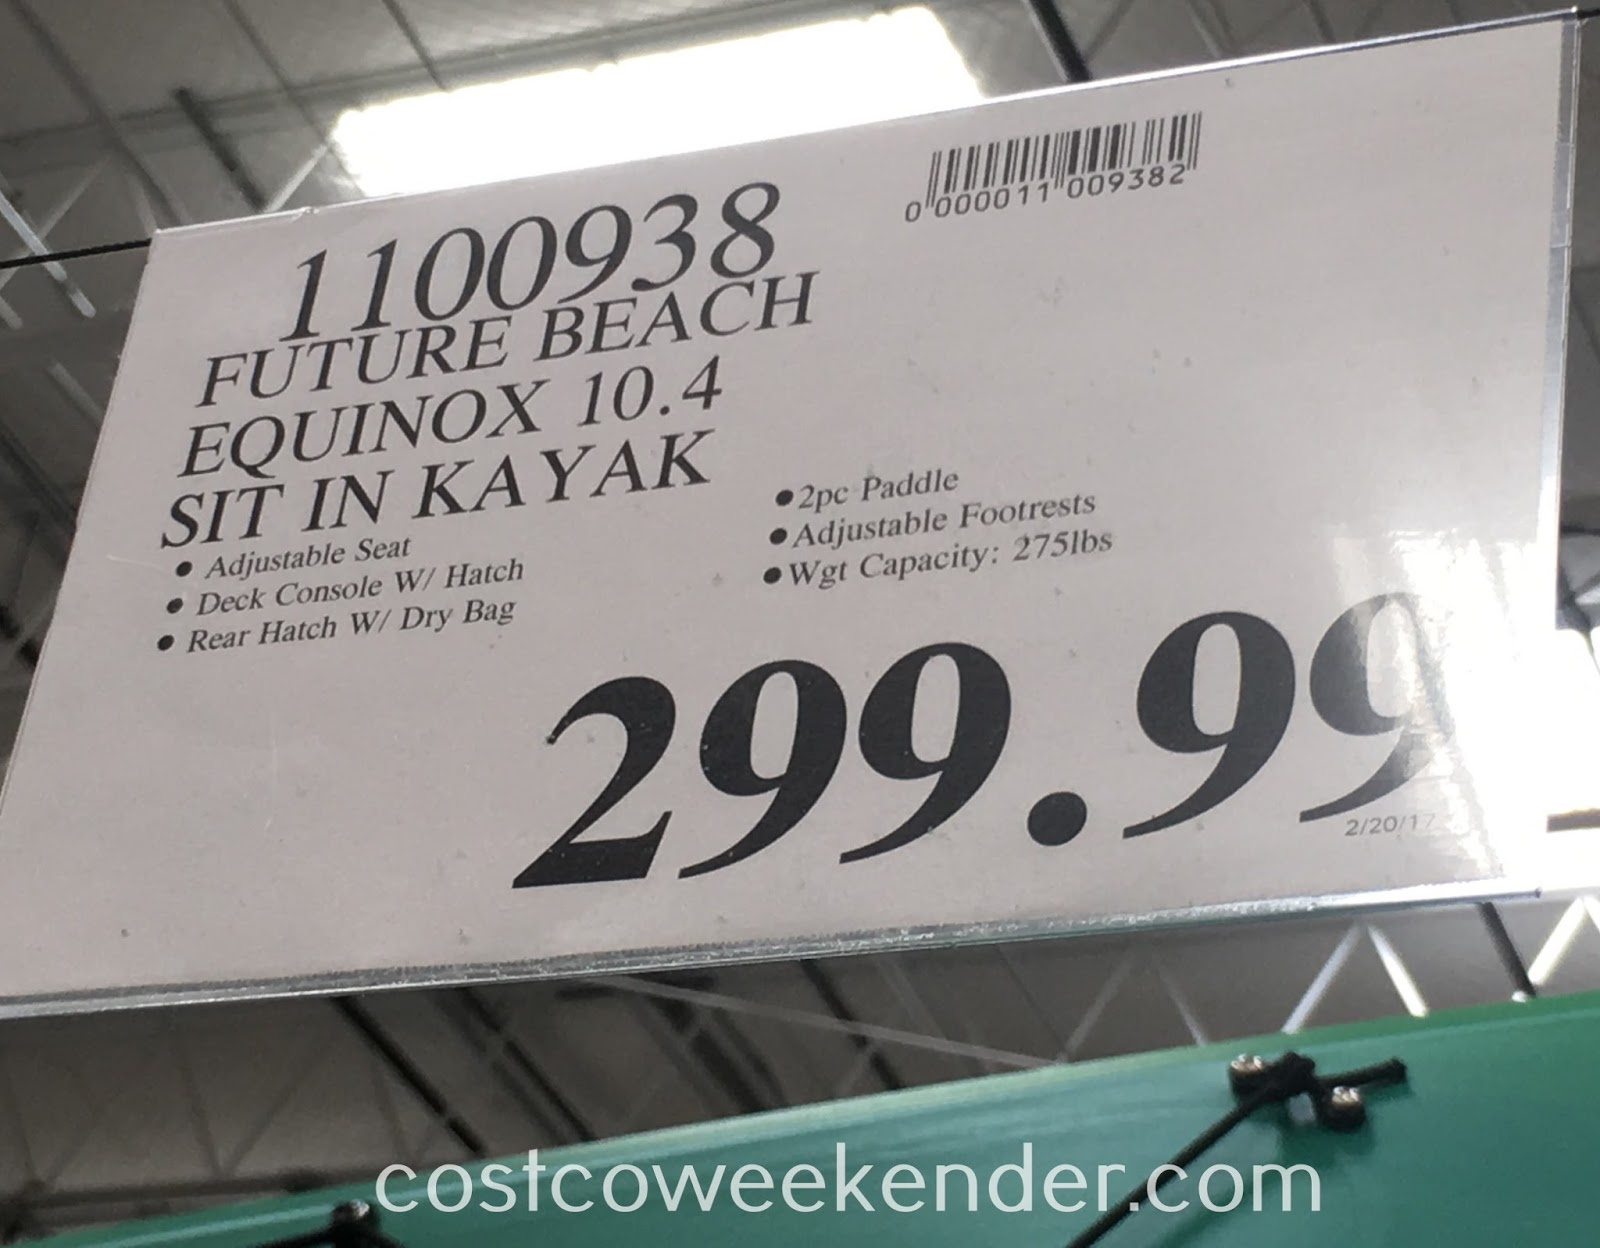 Deal for the Equinox 10.4 Sit-in Kayak at Costco